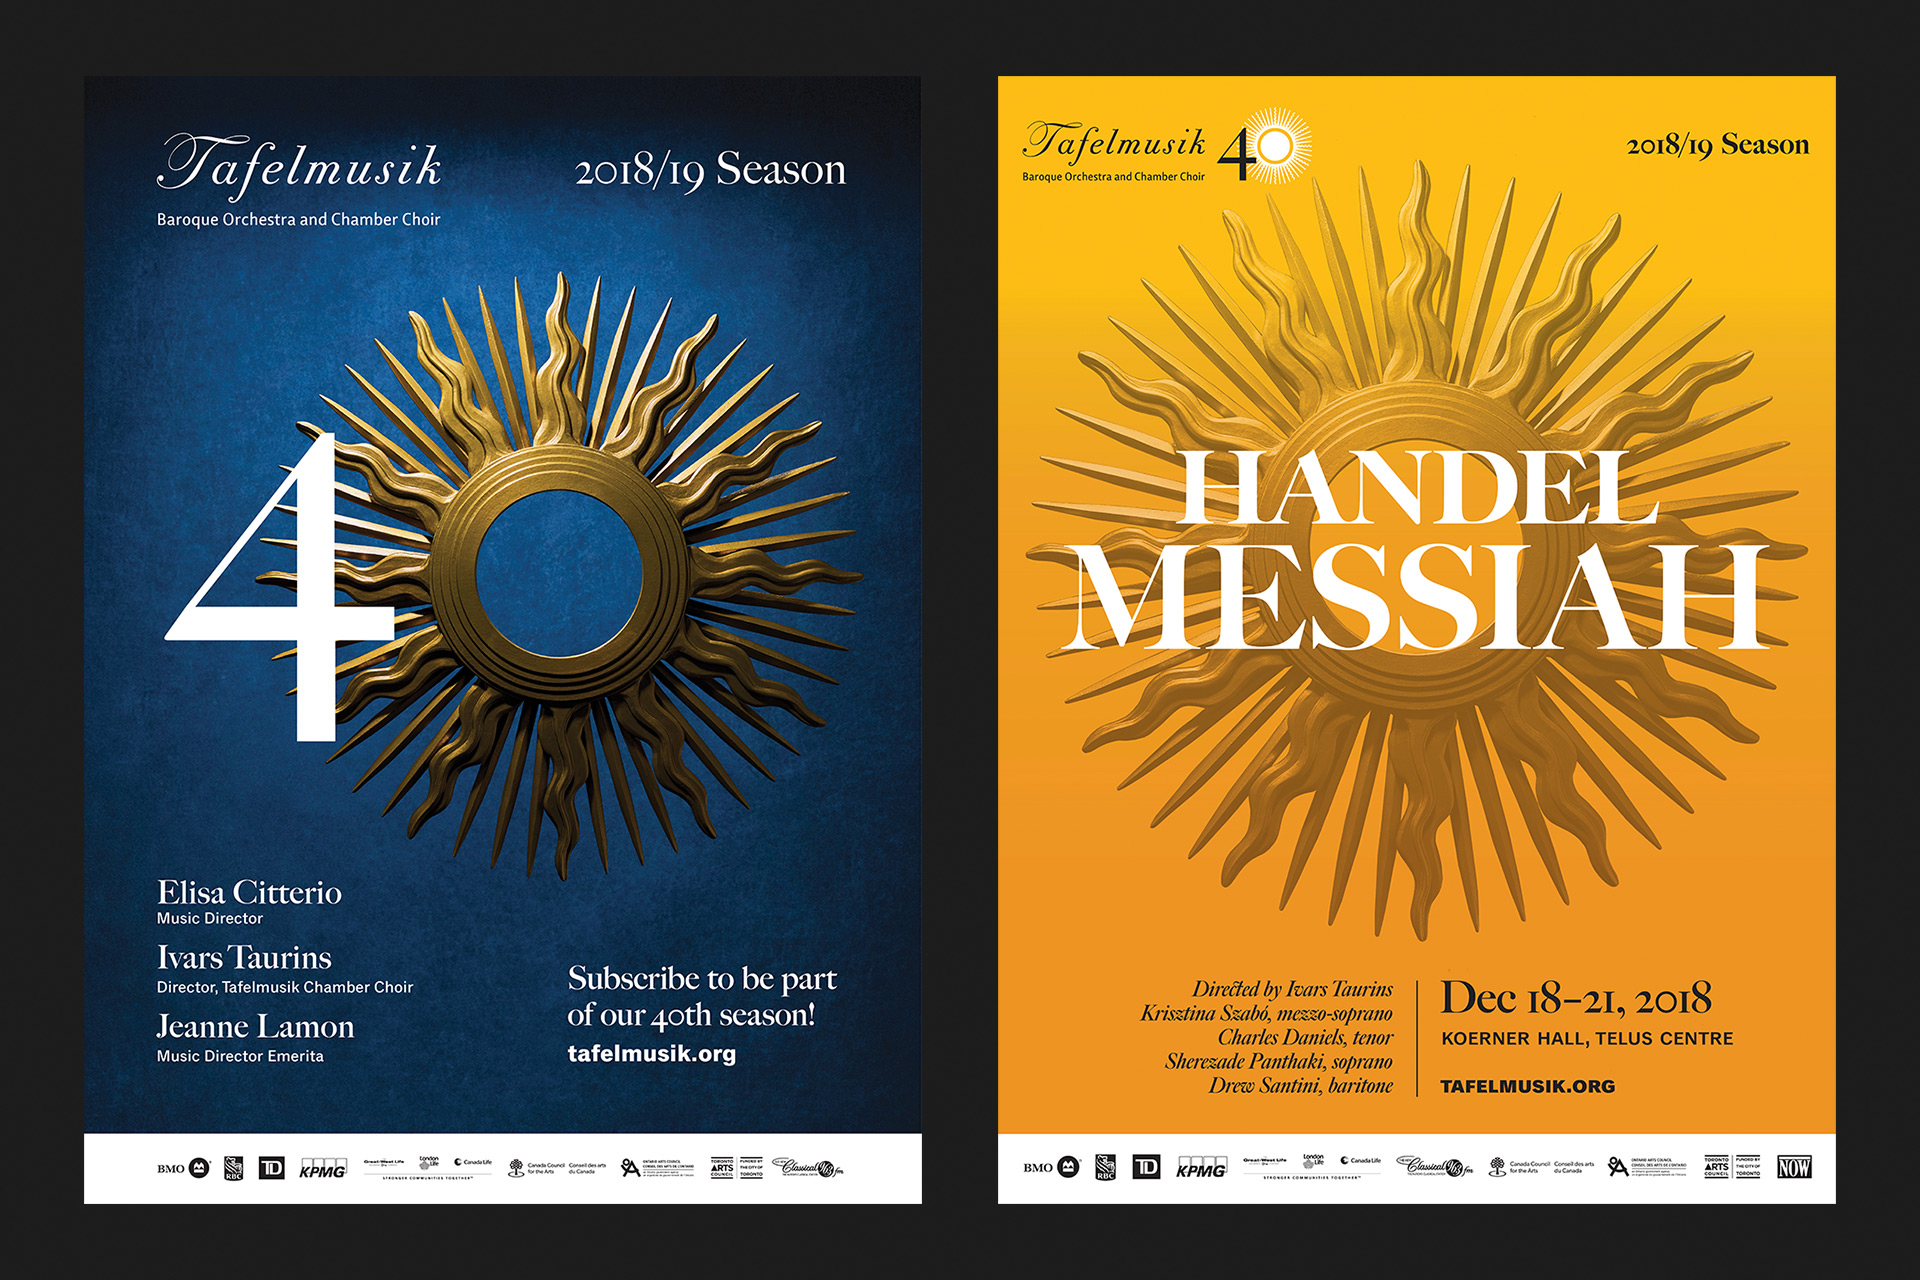 40th Anniversary and Handel Messiah Posters